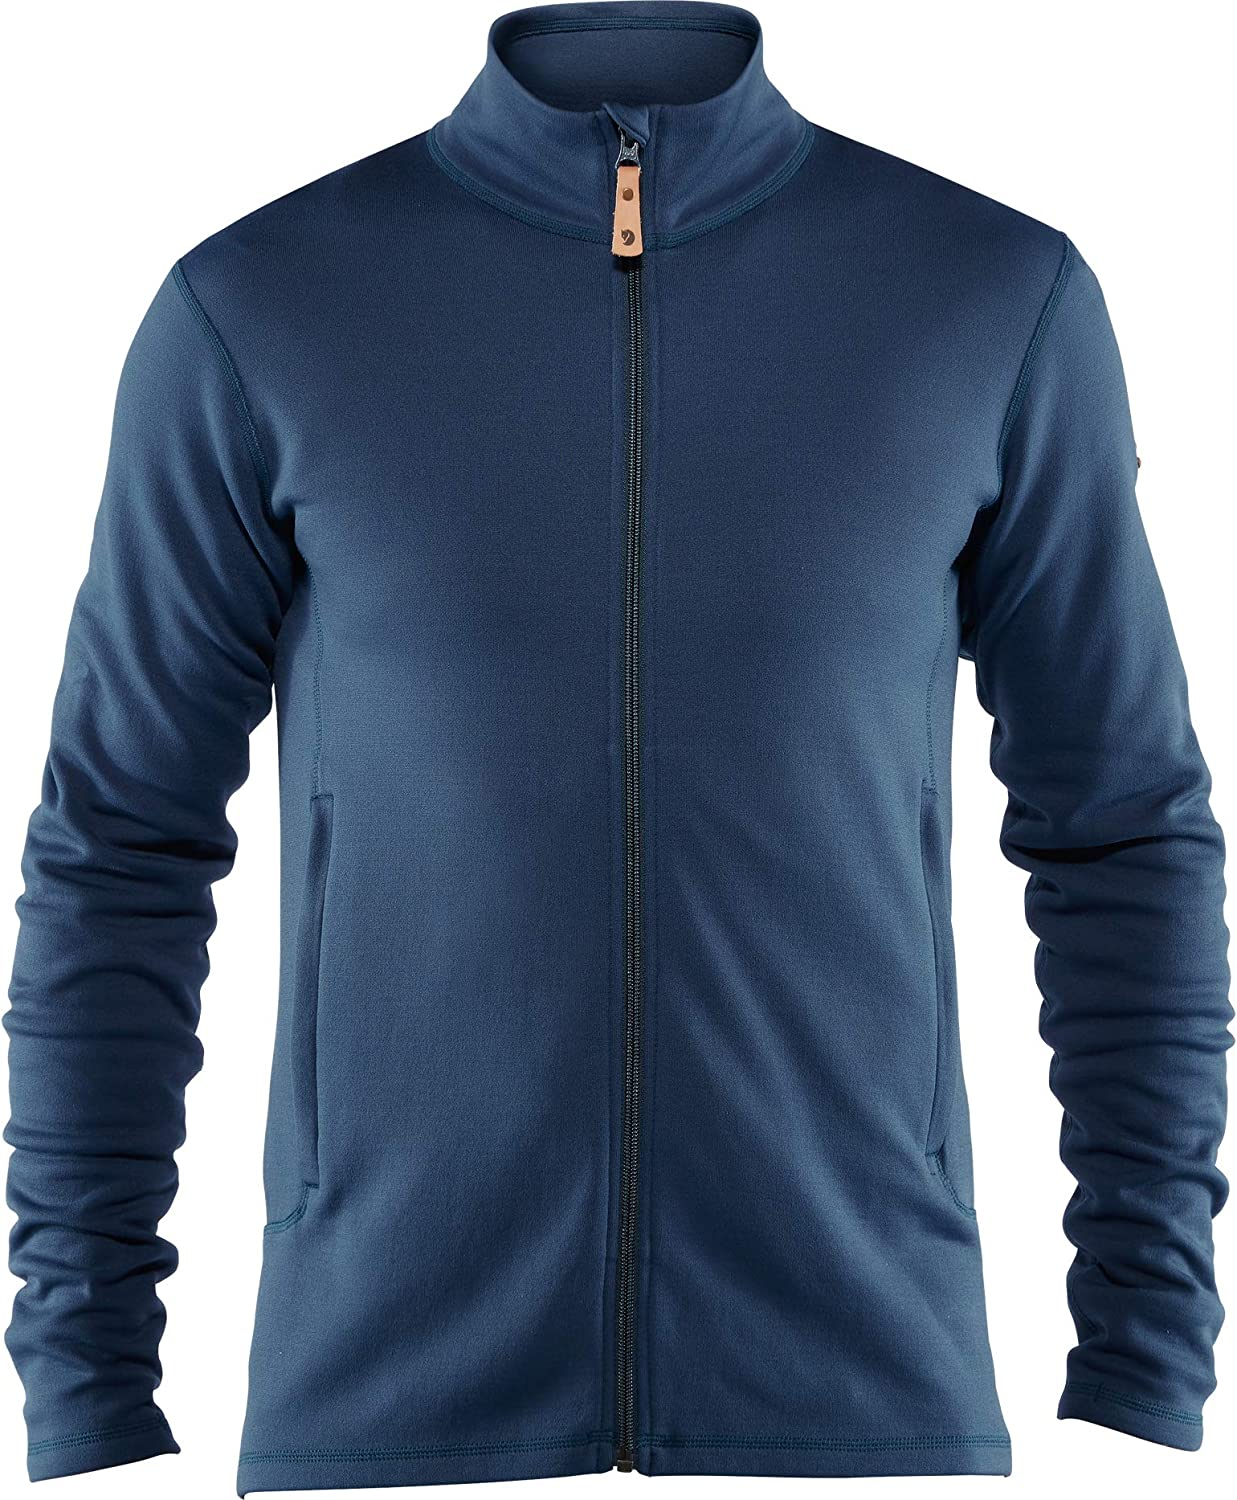 FJALLRAVEN Men's Keb Wool Sweater M Sweatshirt: Amazon.co.uk